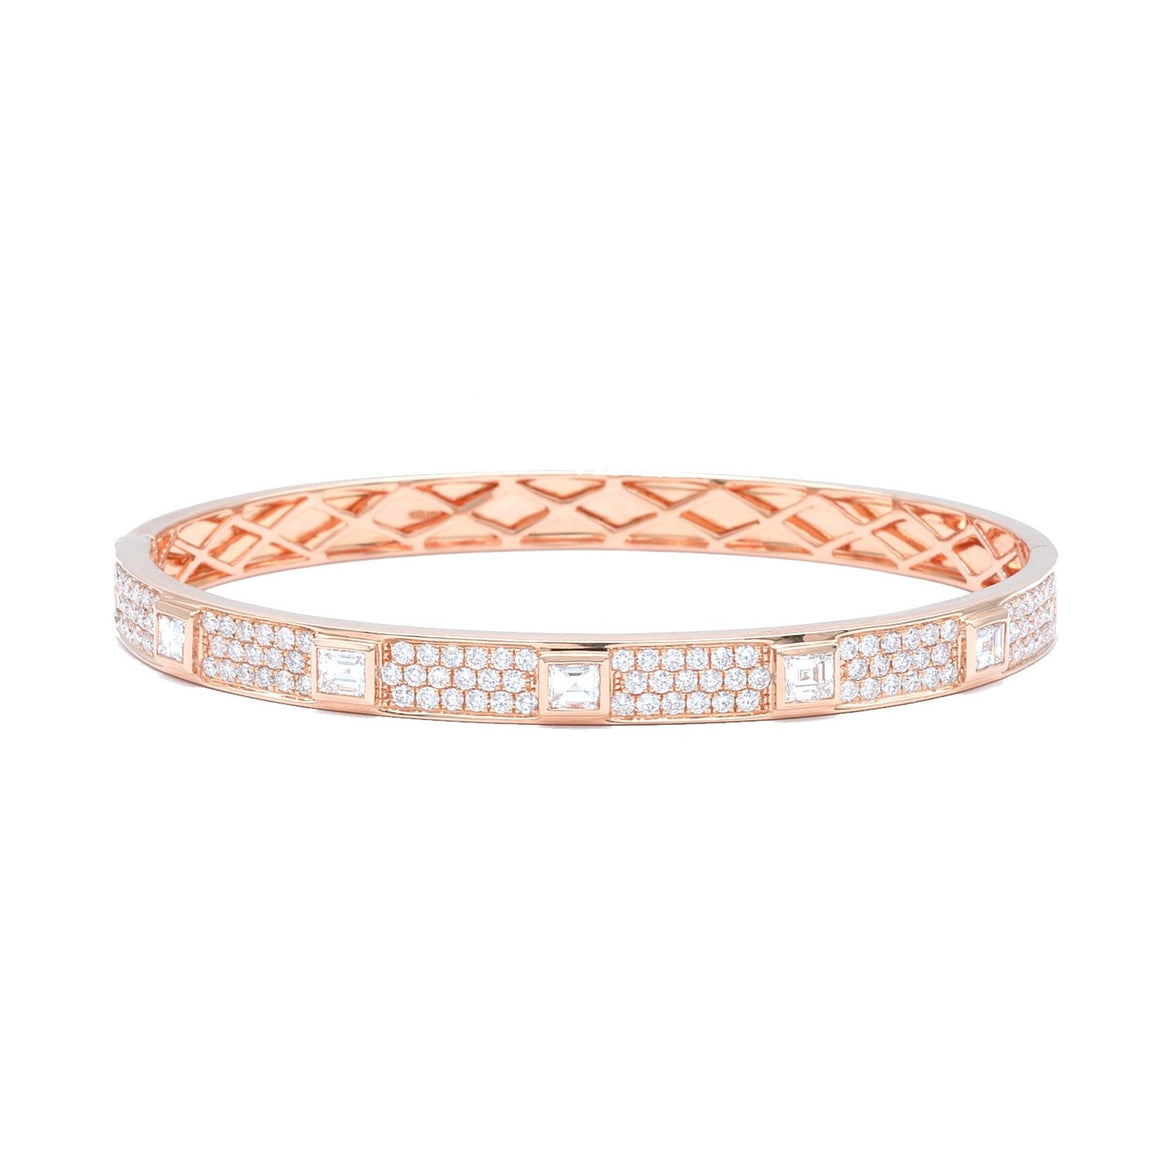 Rose Gold Bangle with Asscher Cut Diamonds